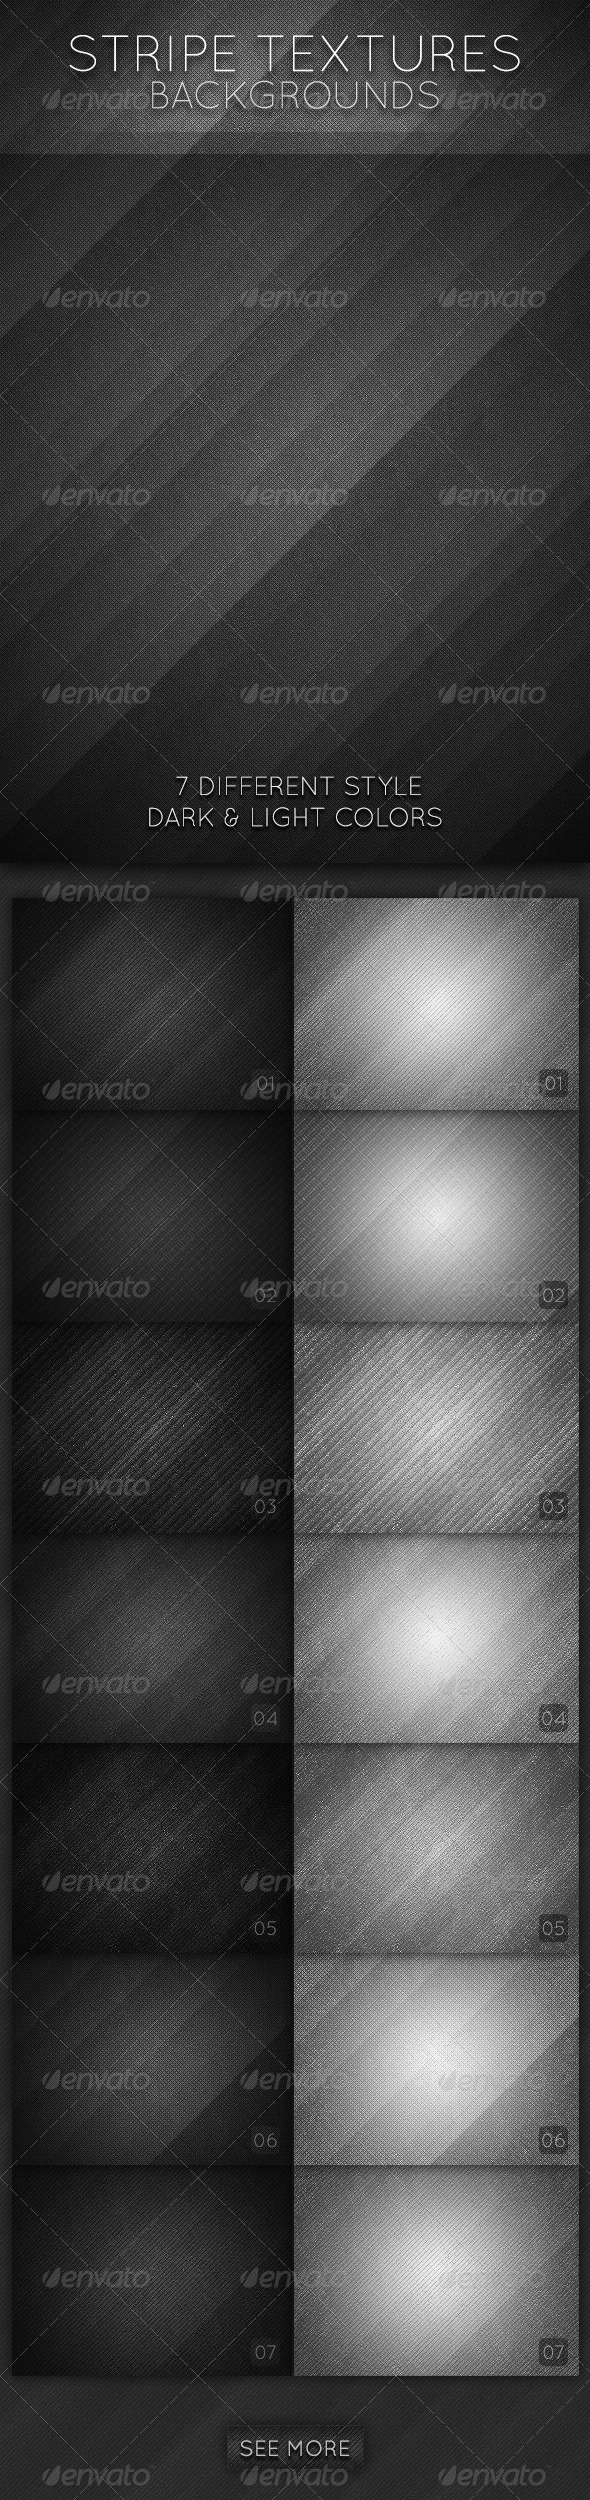 Stripe Textures Backgrounds - Patterns Backgrounds